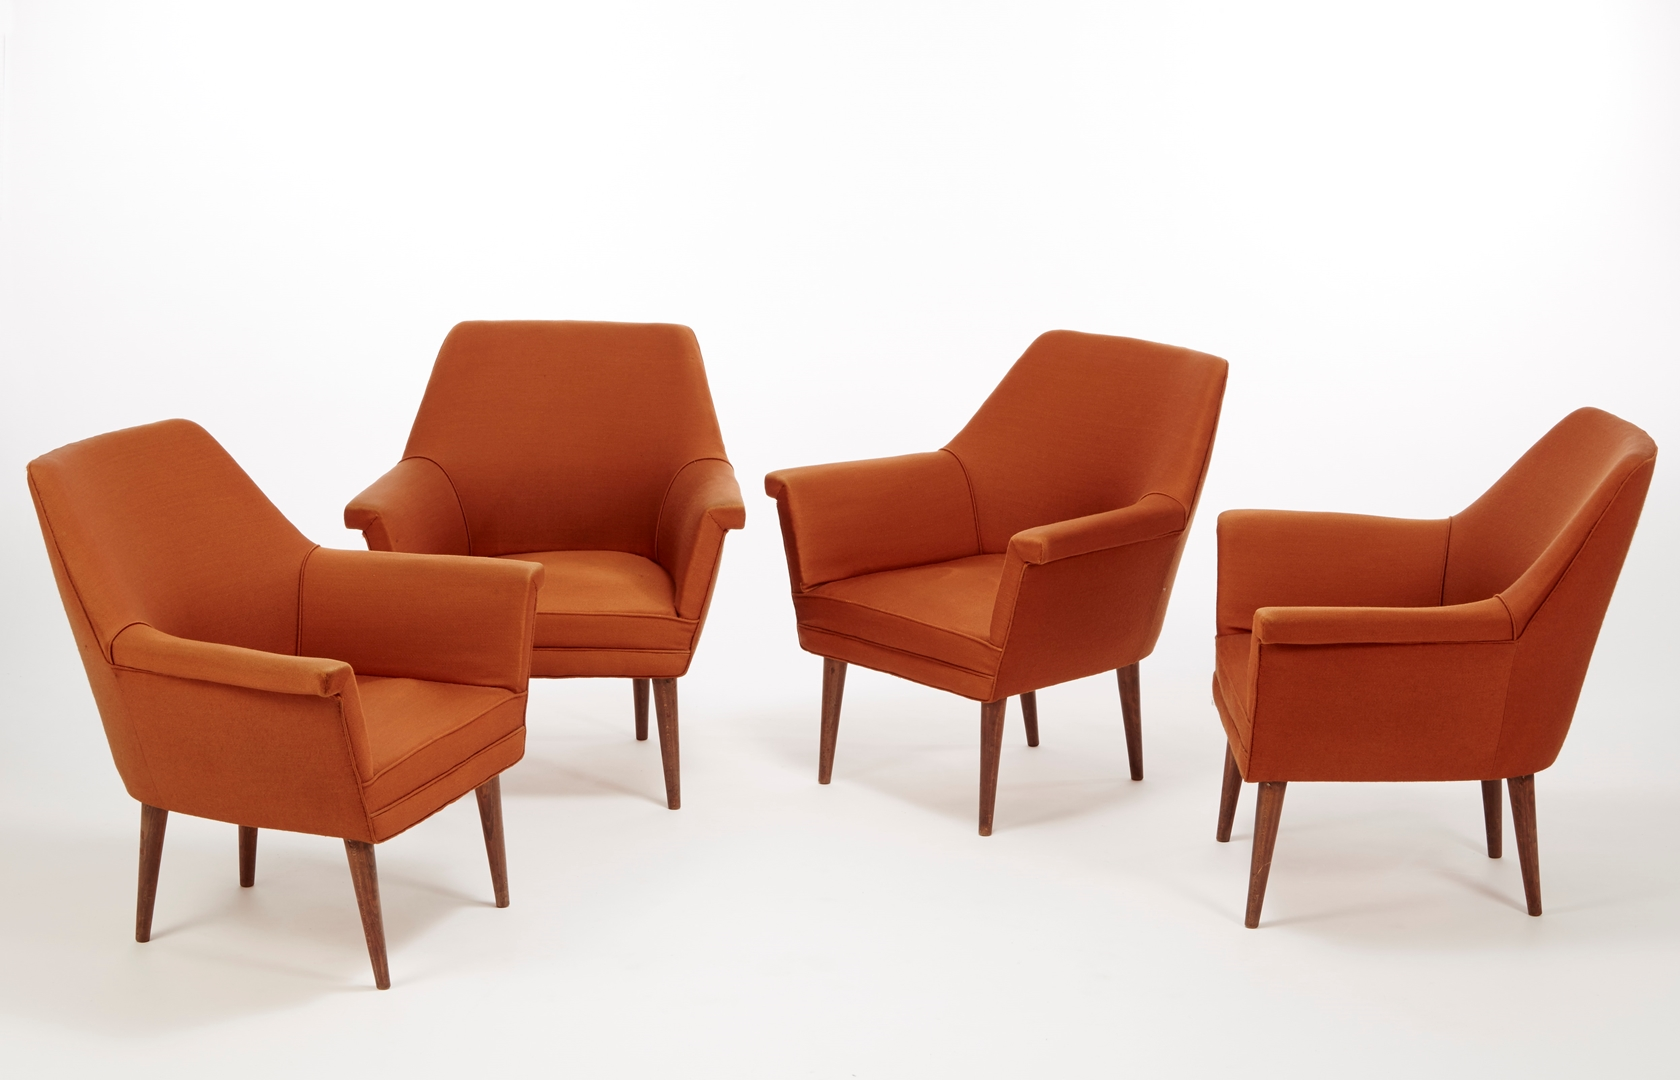 Set of 4 armchairs by BBPR 1962 at Casati Gallery courtesy of Casati Gallery (Copy)